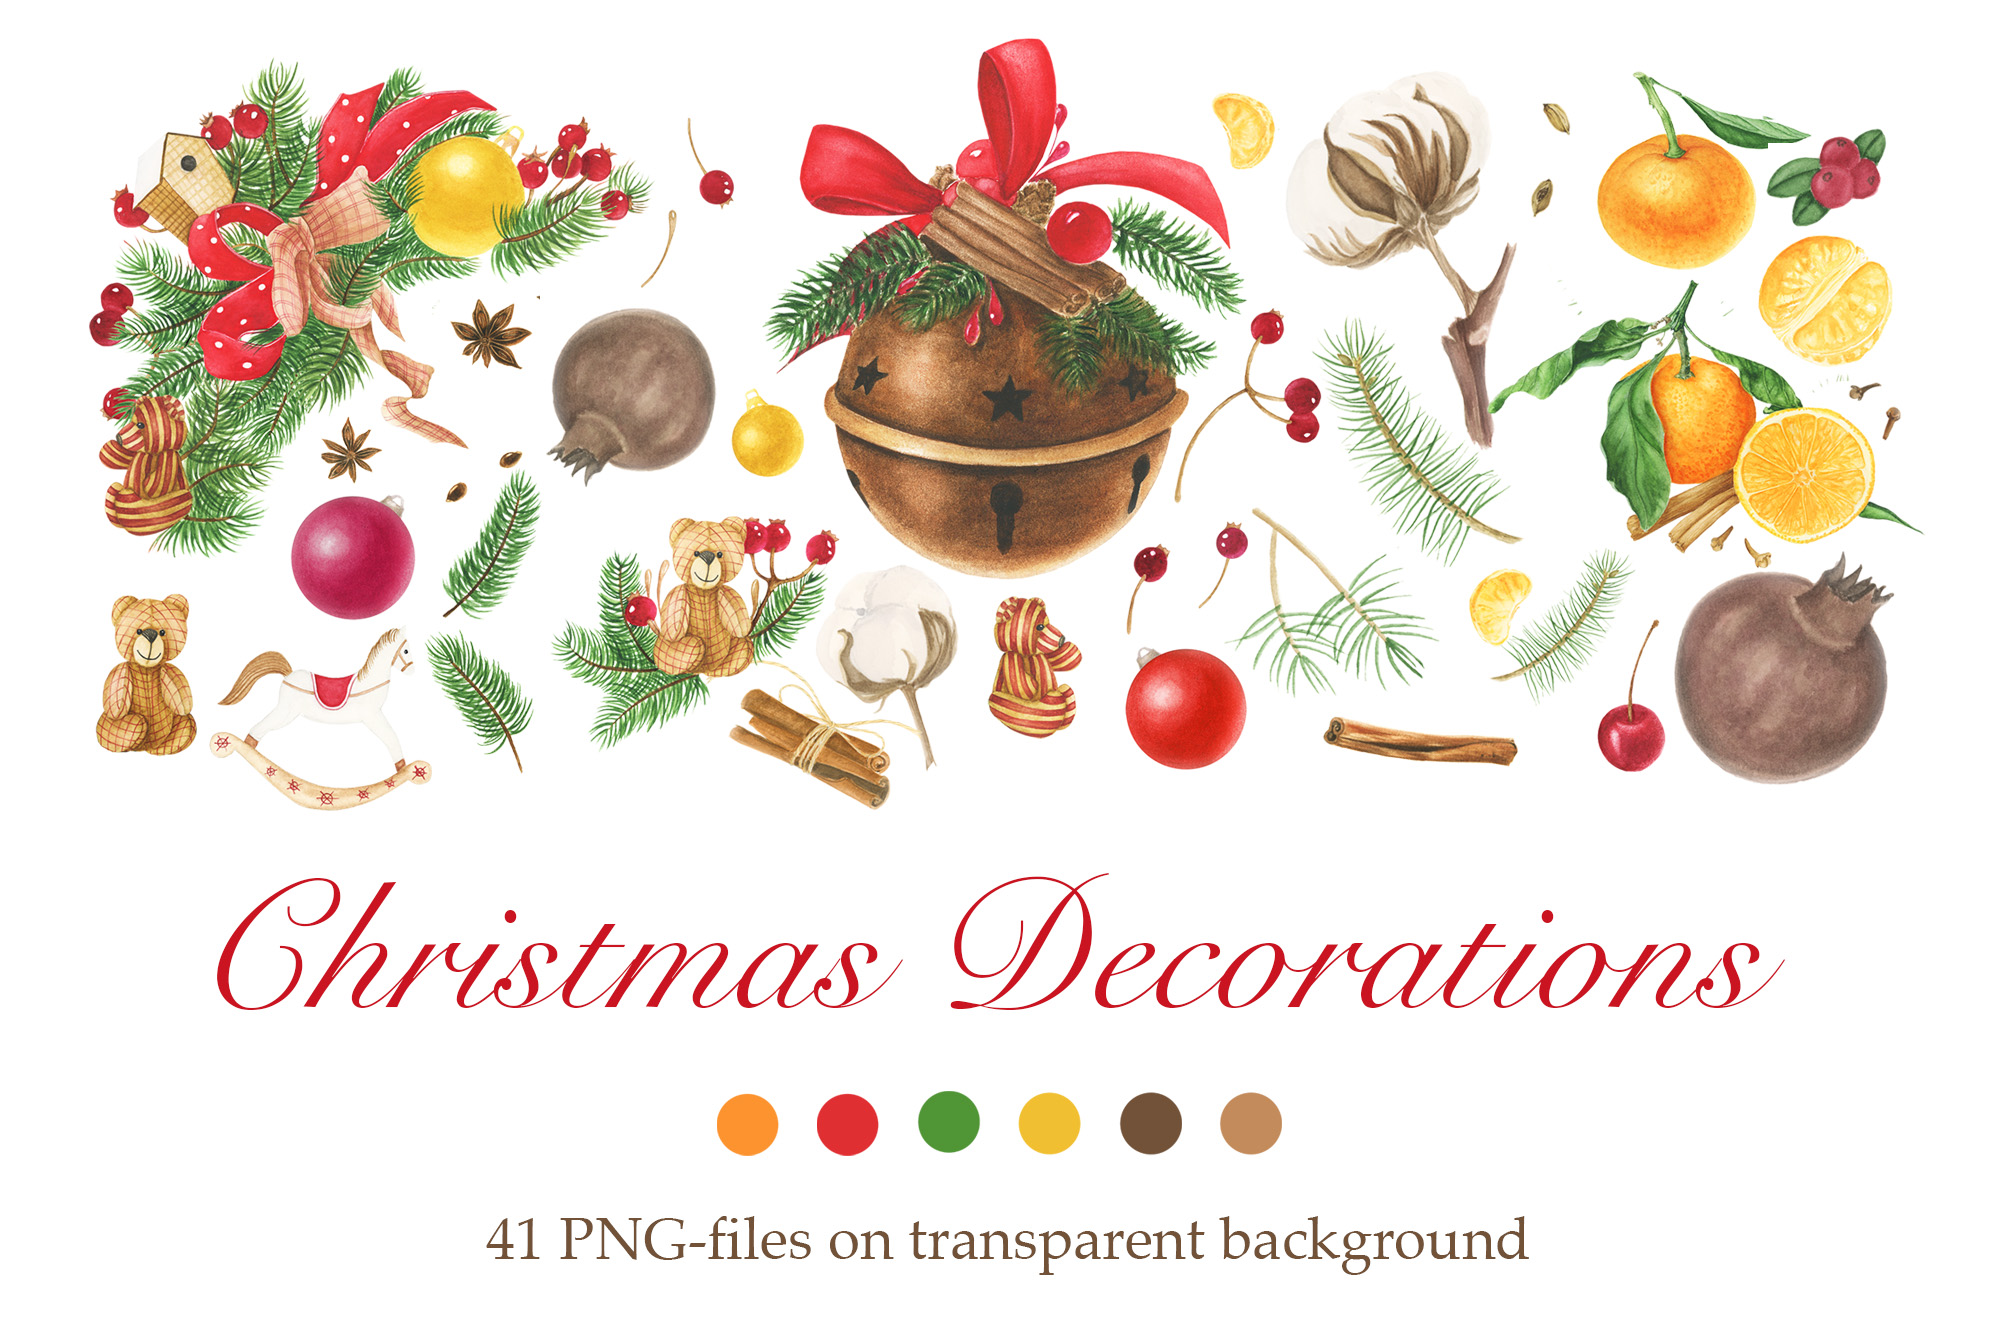 Watercolor Christmas Decorations Clipart.